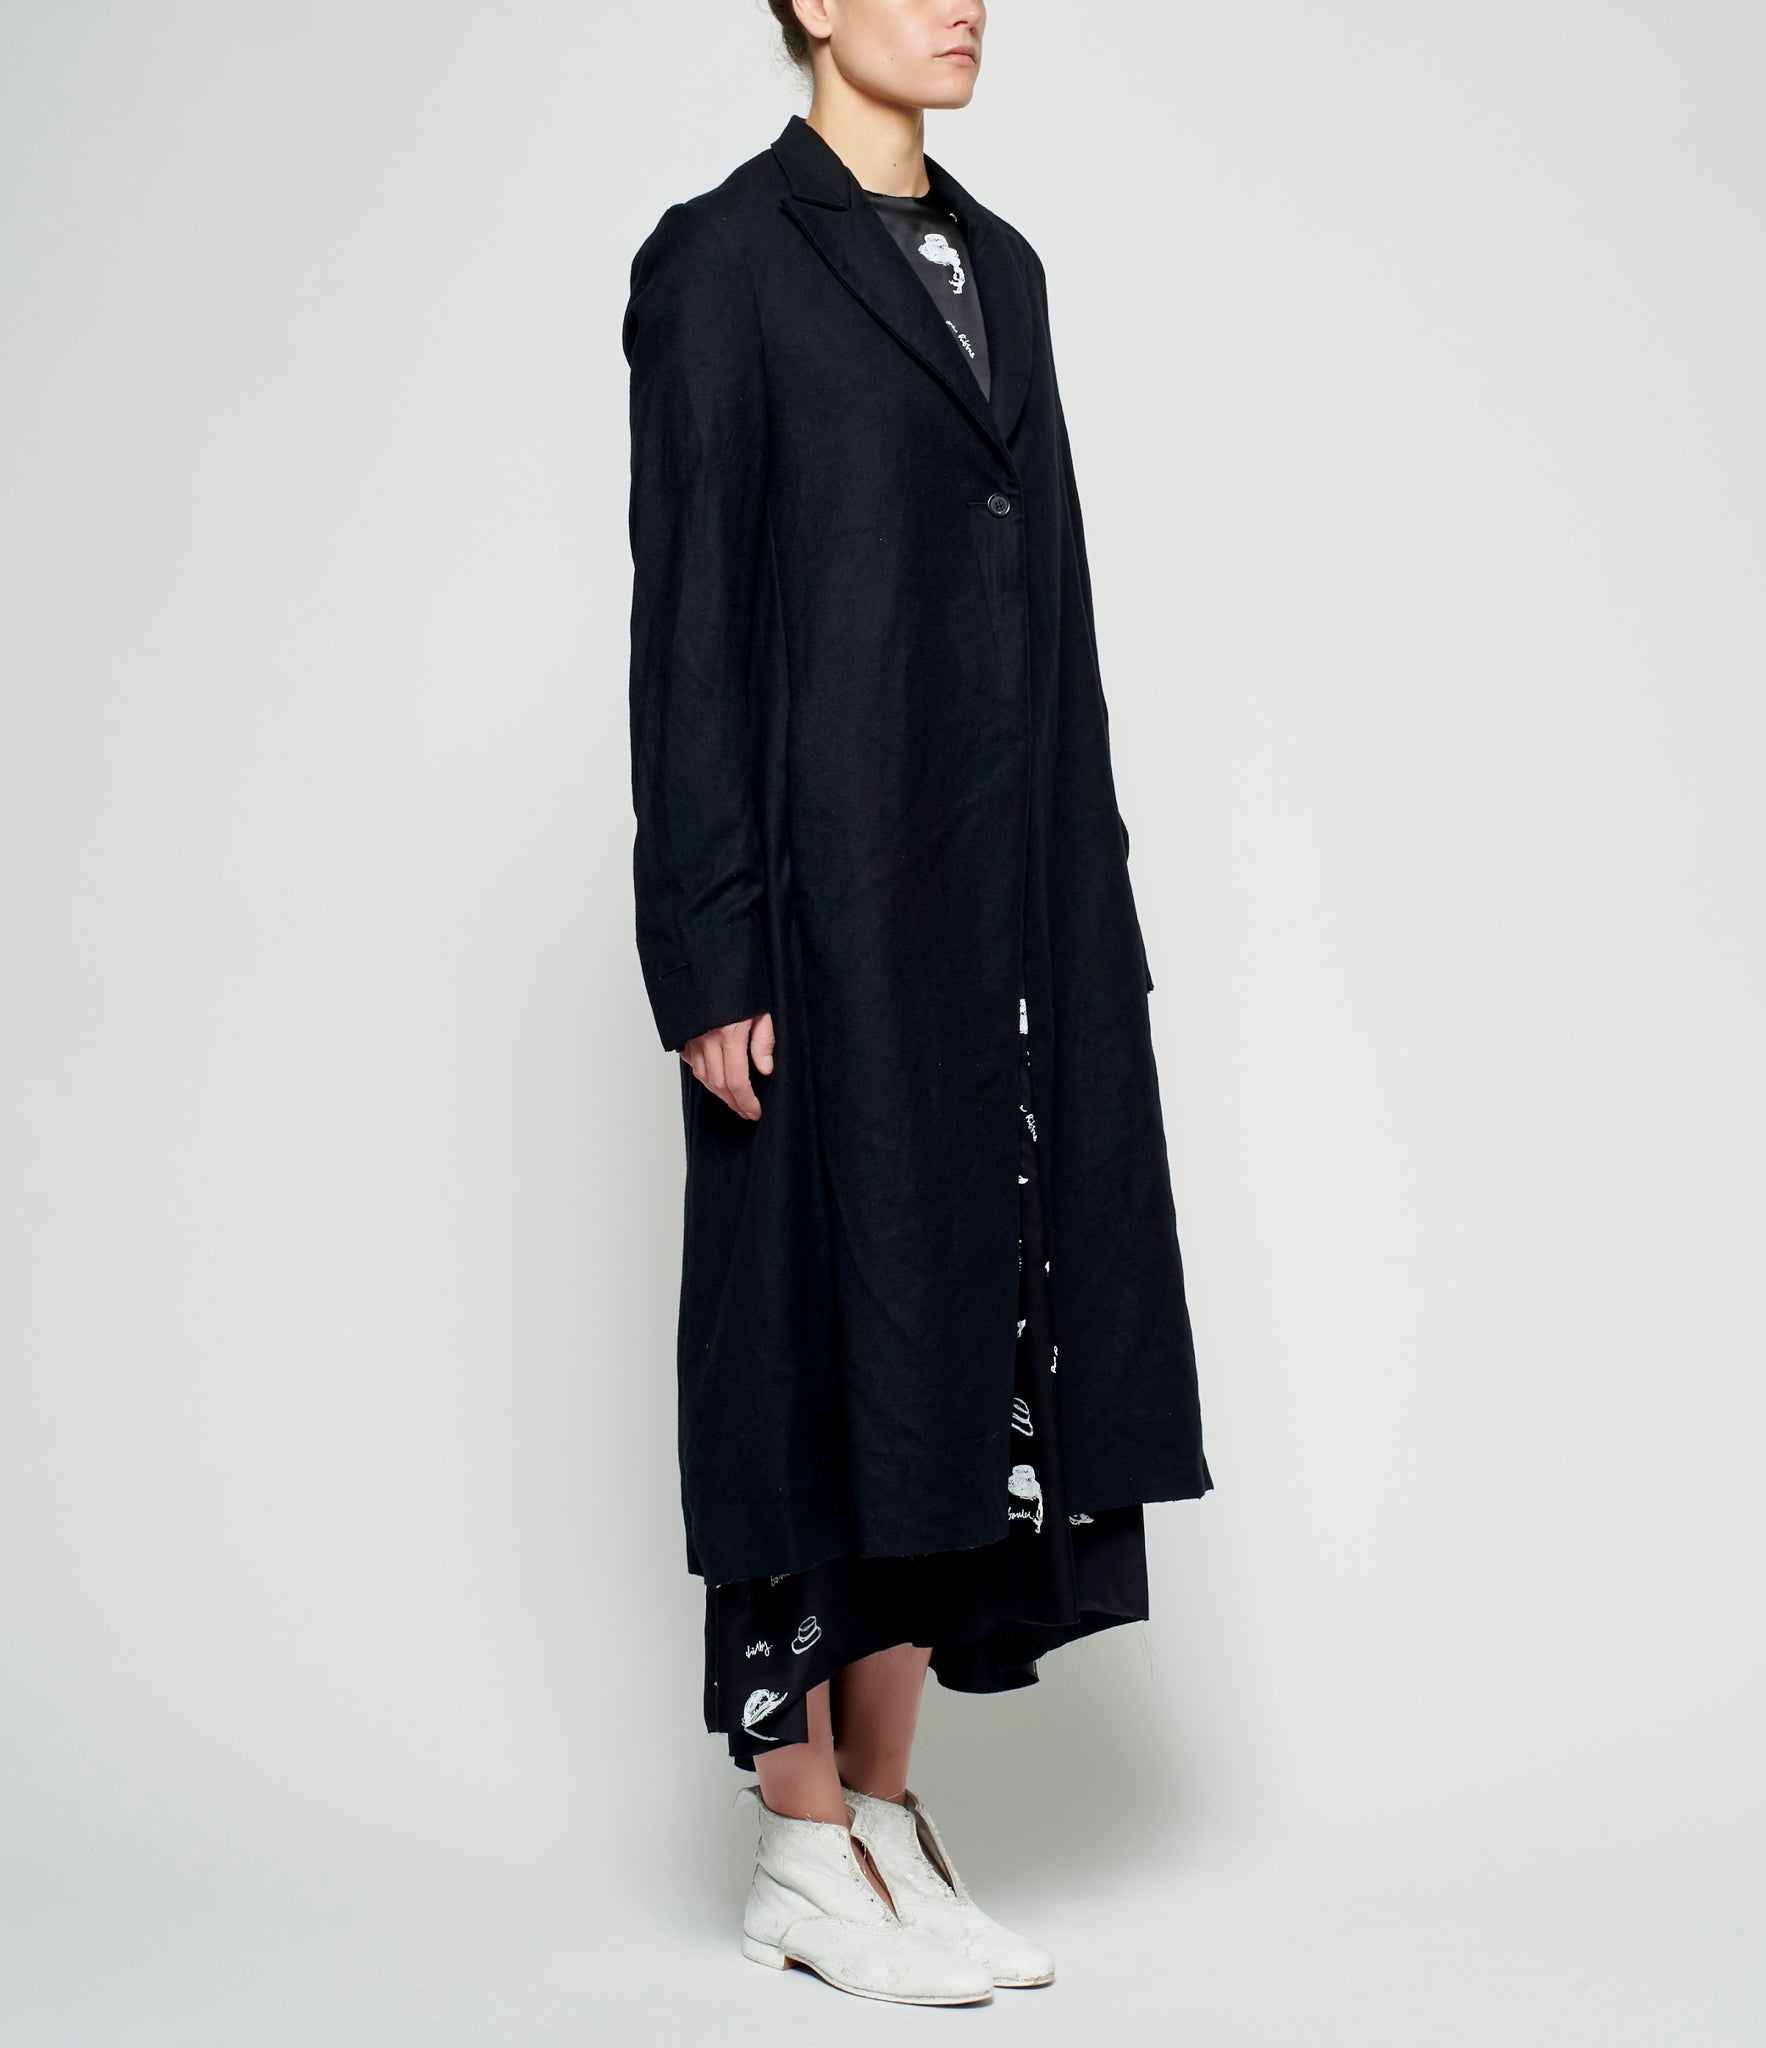 Elena Dawson Wool Cashmere Print Lining One Button Coat